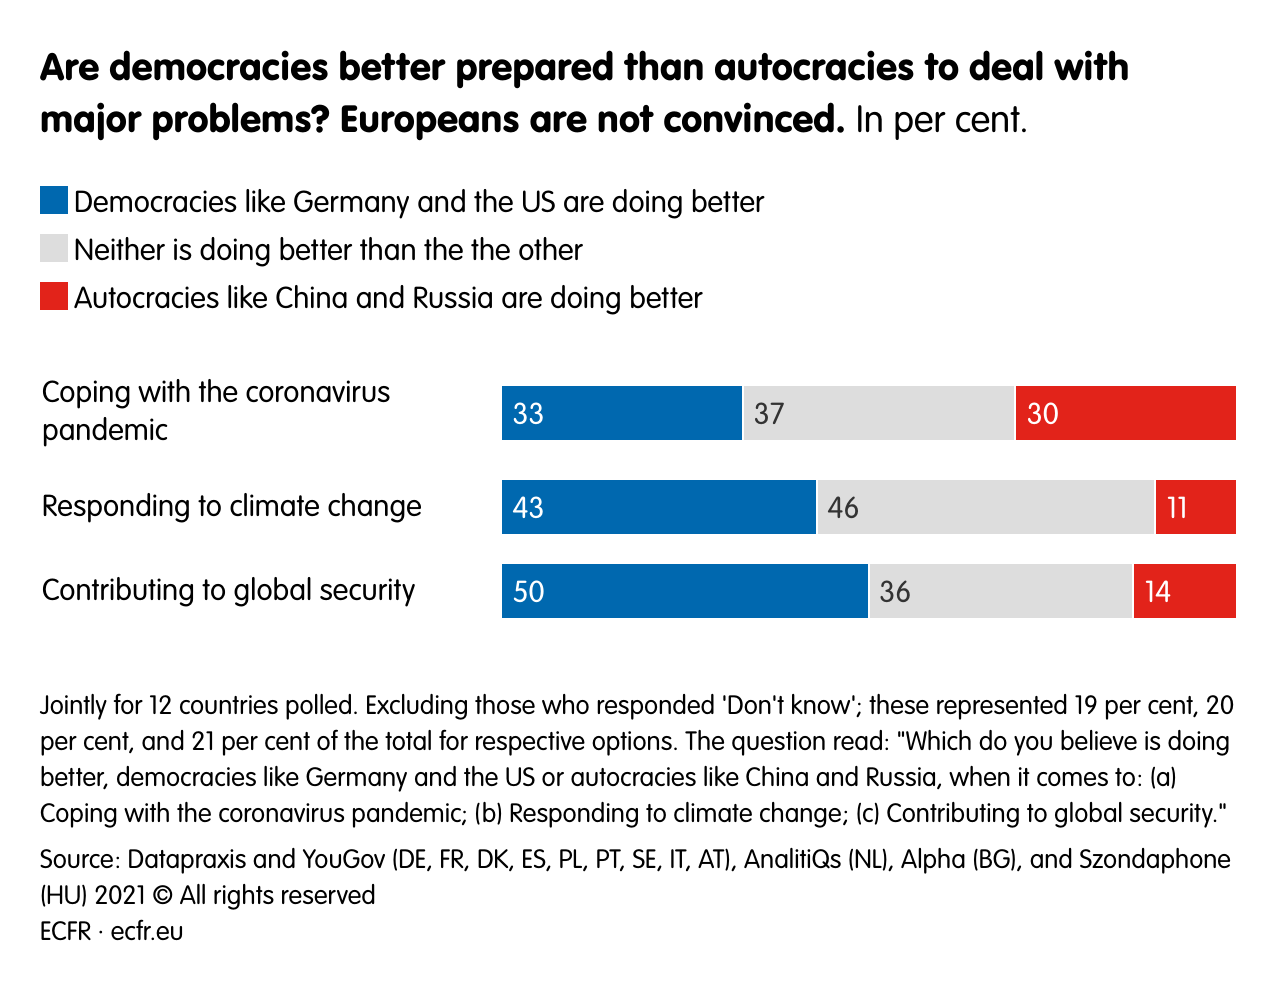 Are democracies better prepared than autocracies to deal with major problems? Europeans are not convinced.